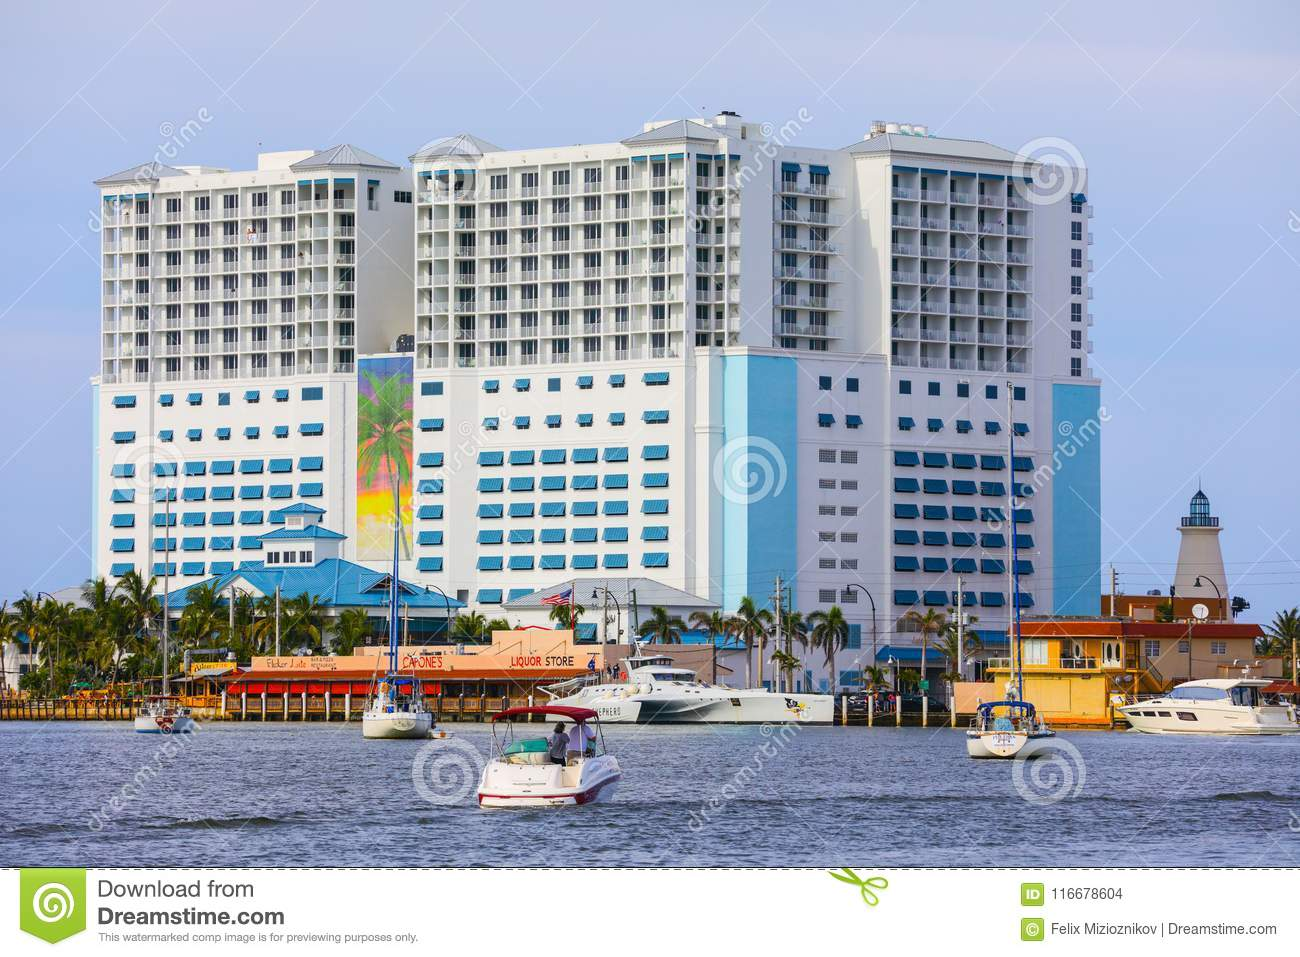 Image Of Margaritaville Resort Hollywood Beach Florida With